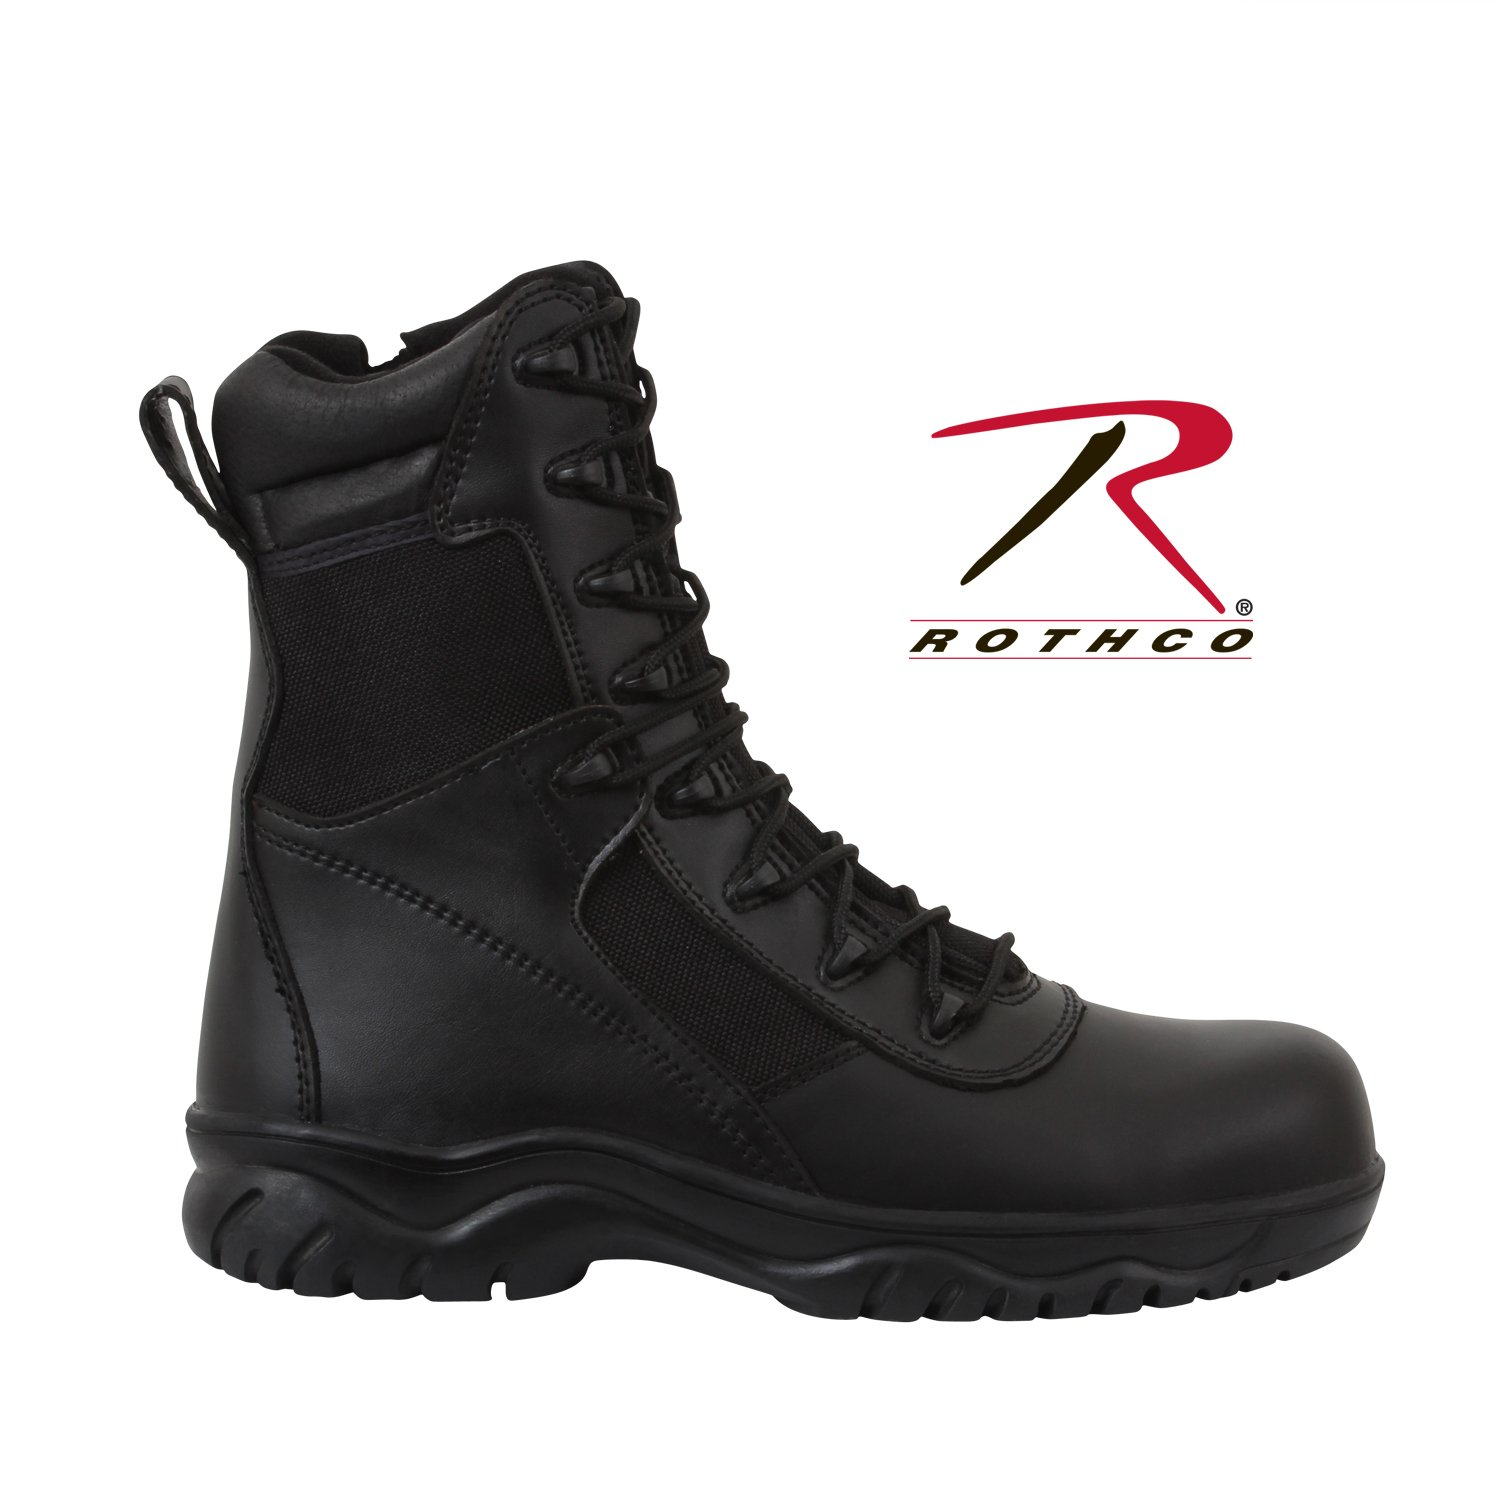 Rothco Side Zip-Composite Forced Entry Tact Boot, 12